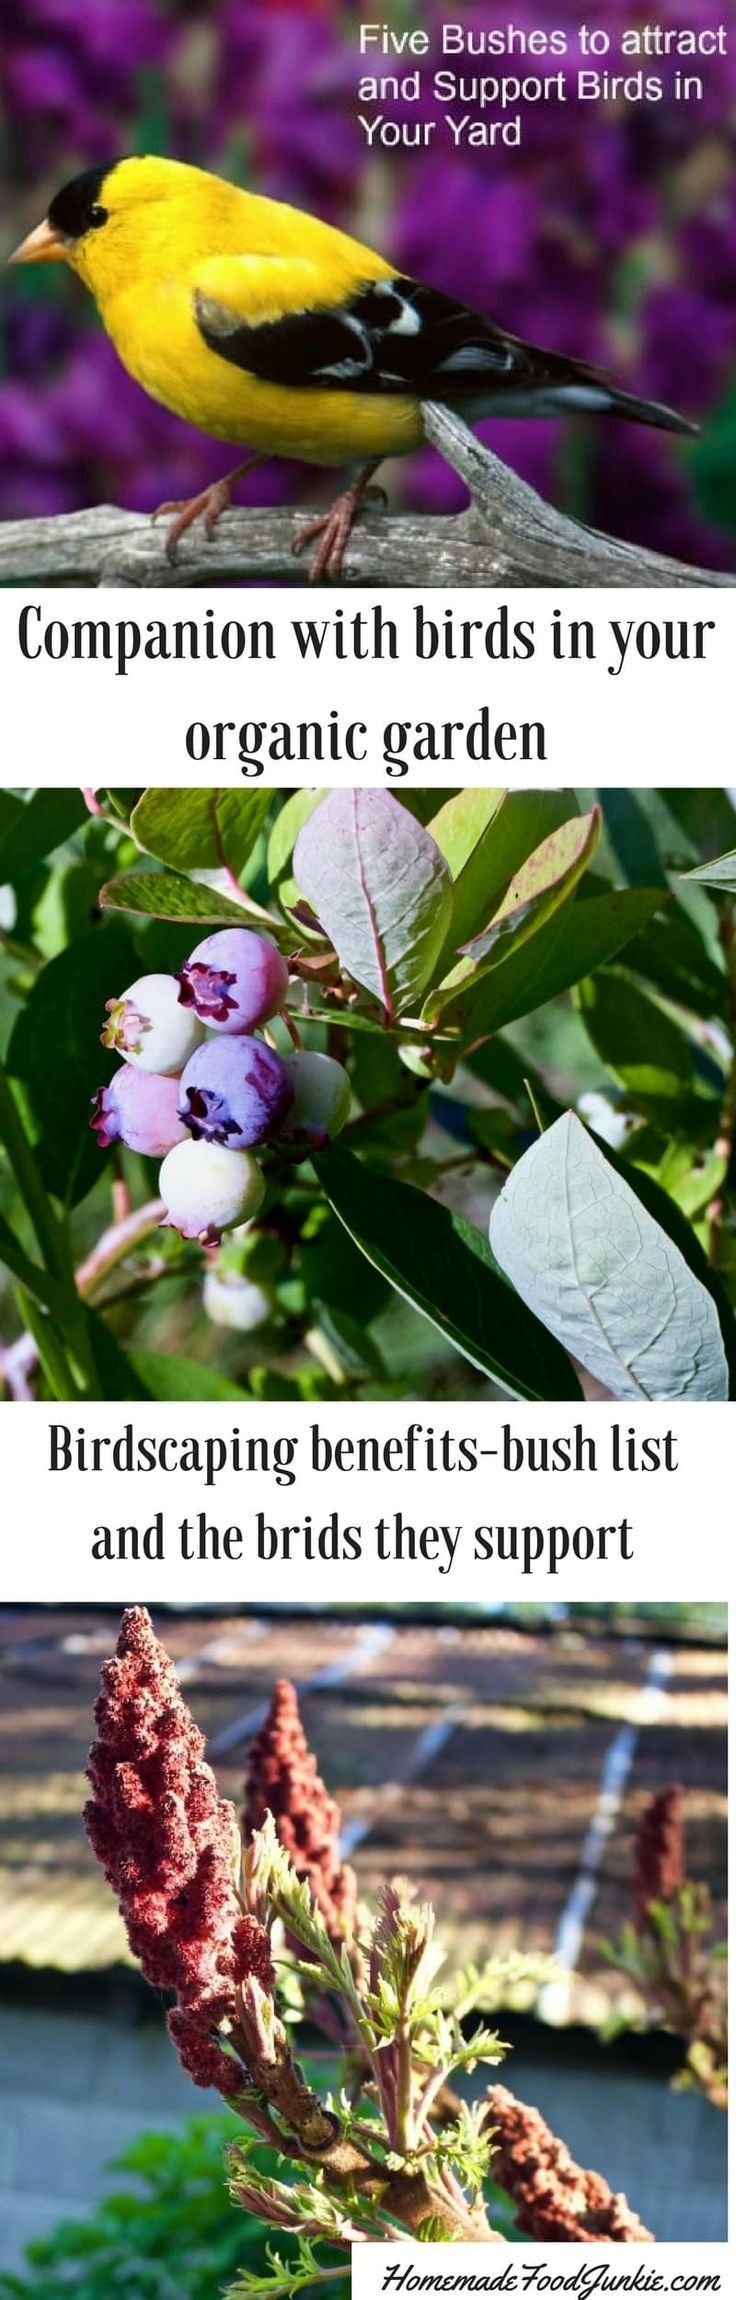 Birdscaping offers benefits to organic gardeners and support our wild birds.